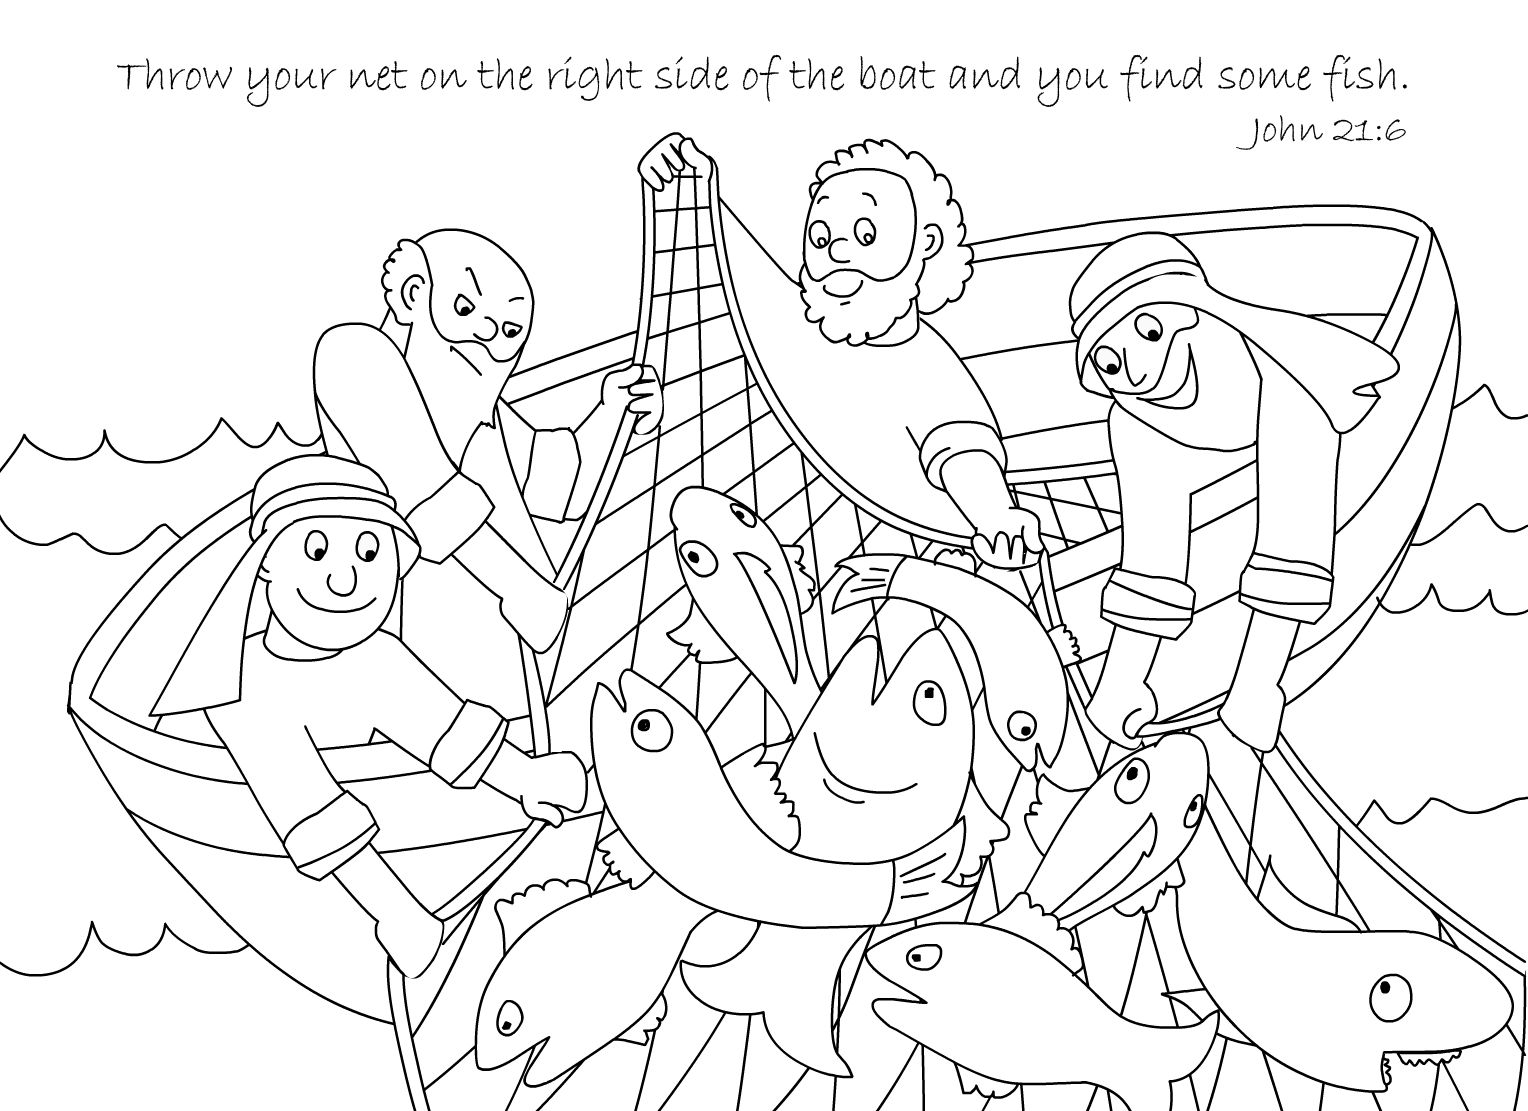 A Net Full of Fish Coloring Page Free Download | Bible ...